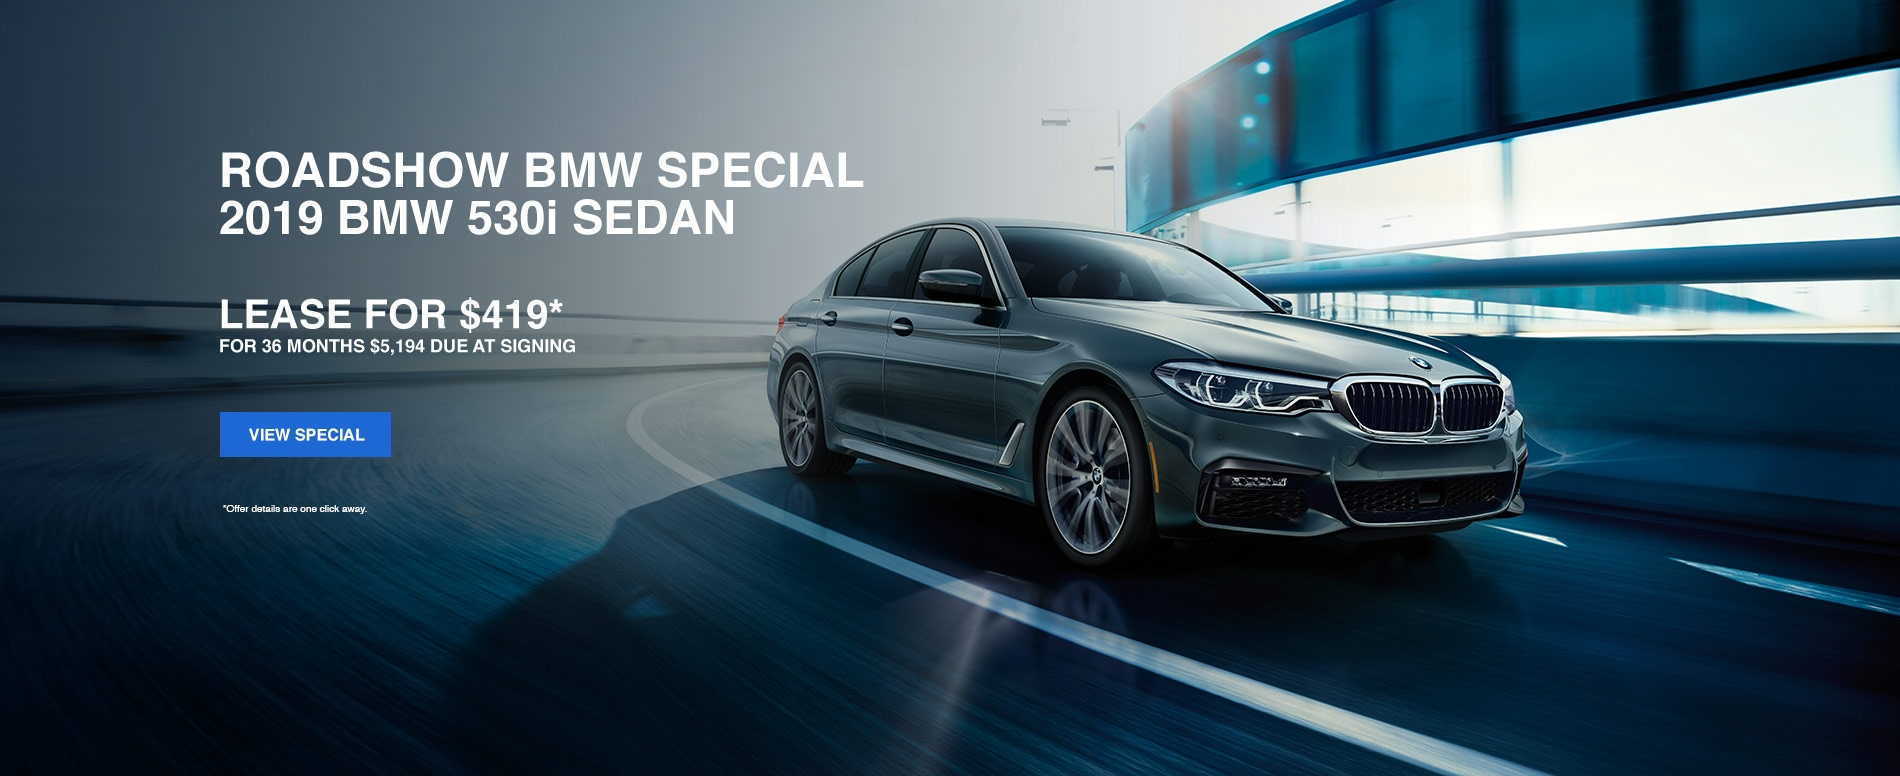 Used Cars Memphis Tn >> Roadshow Bmw New Used Bmw Sales Bmw Service In Memphis Tn